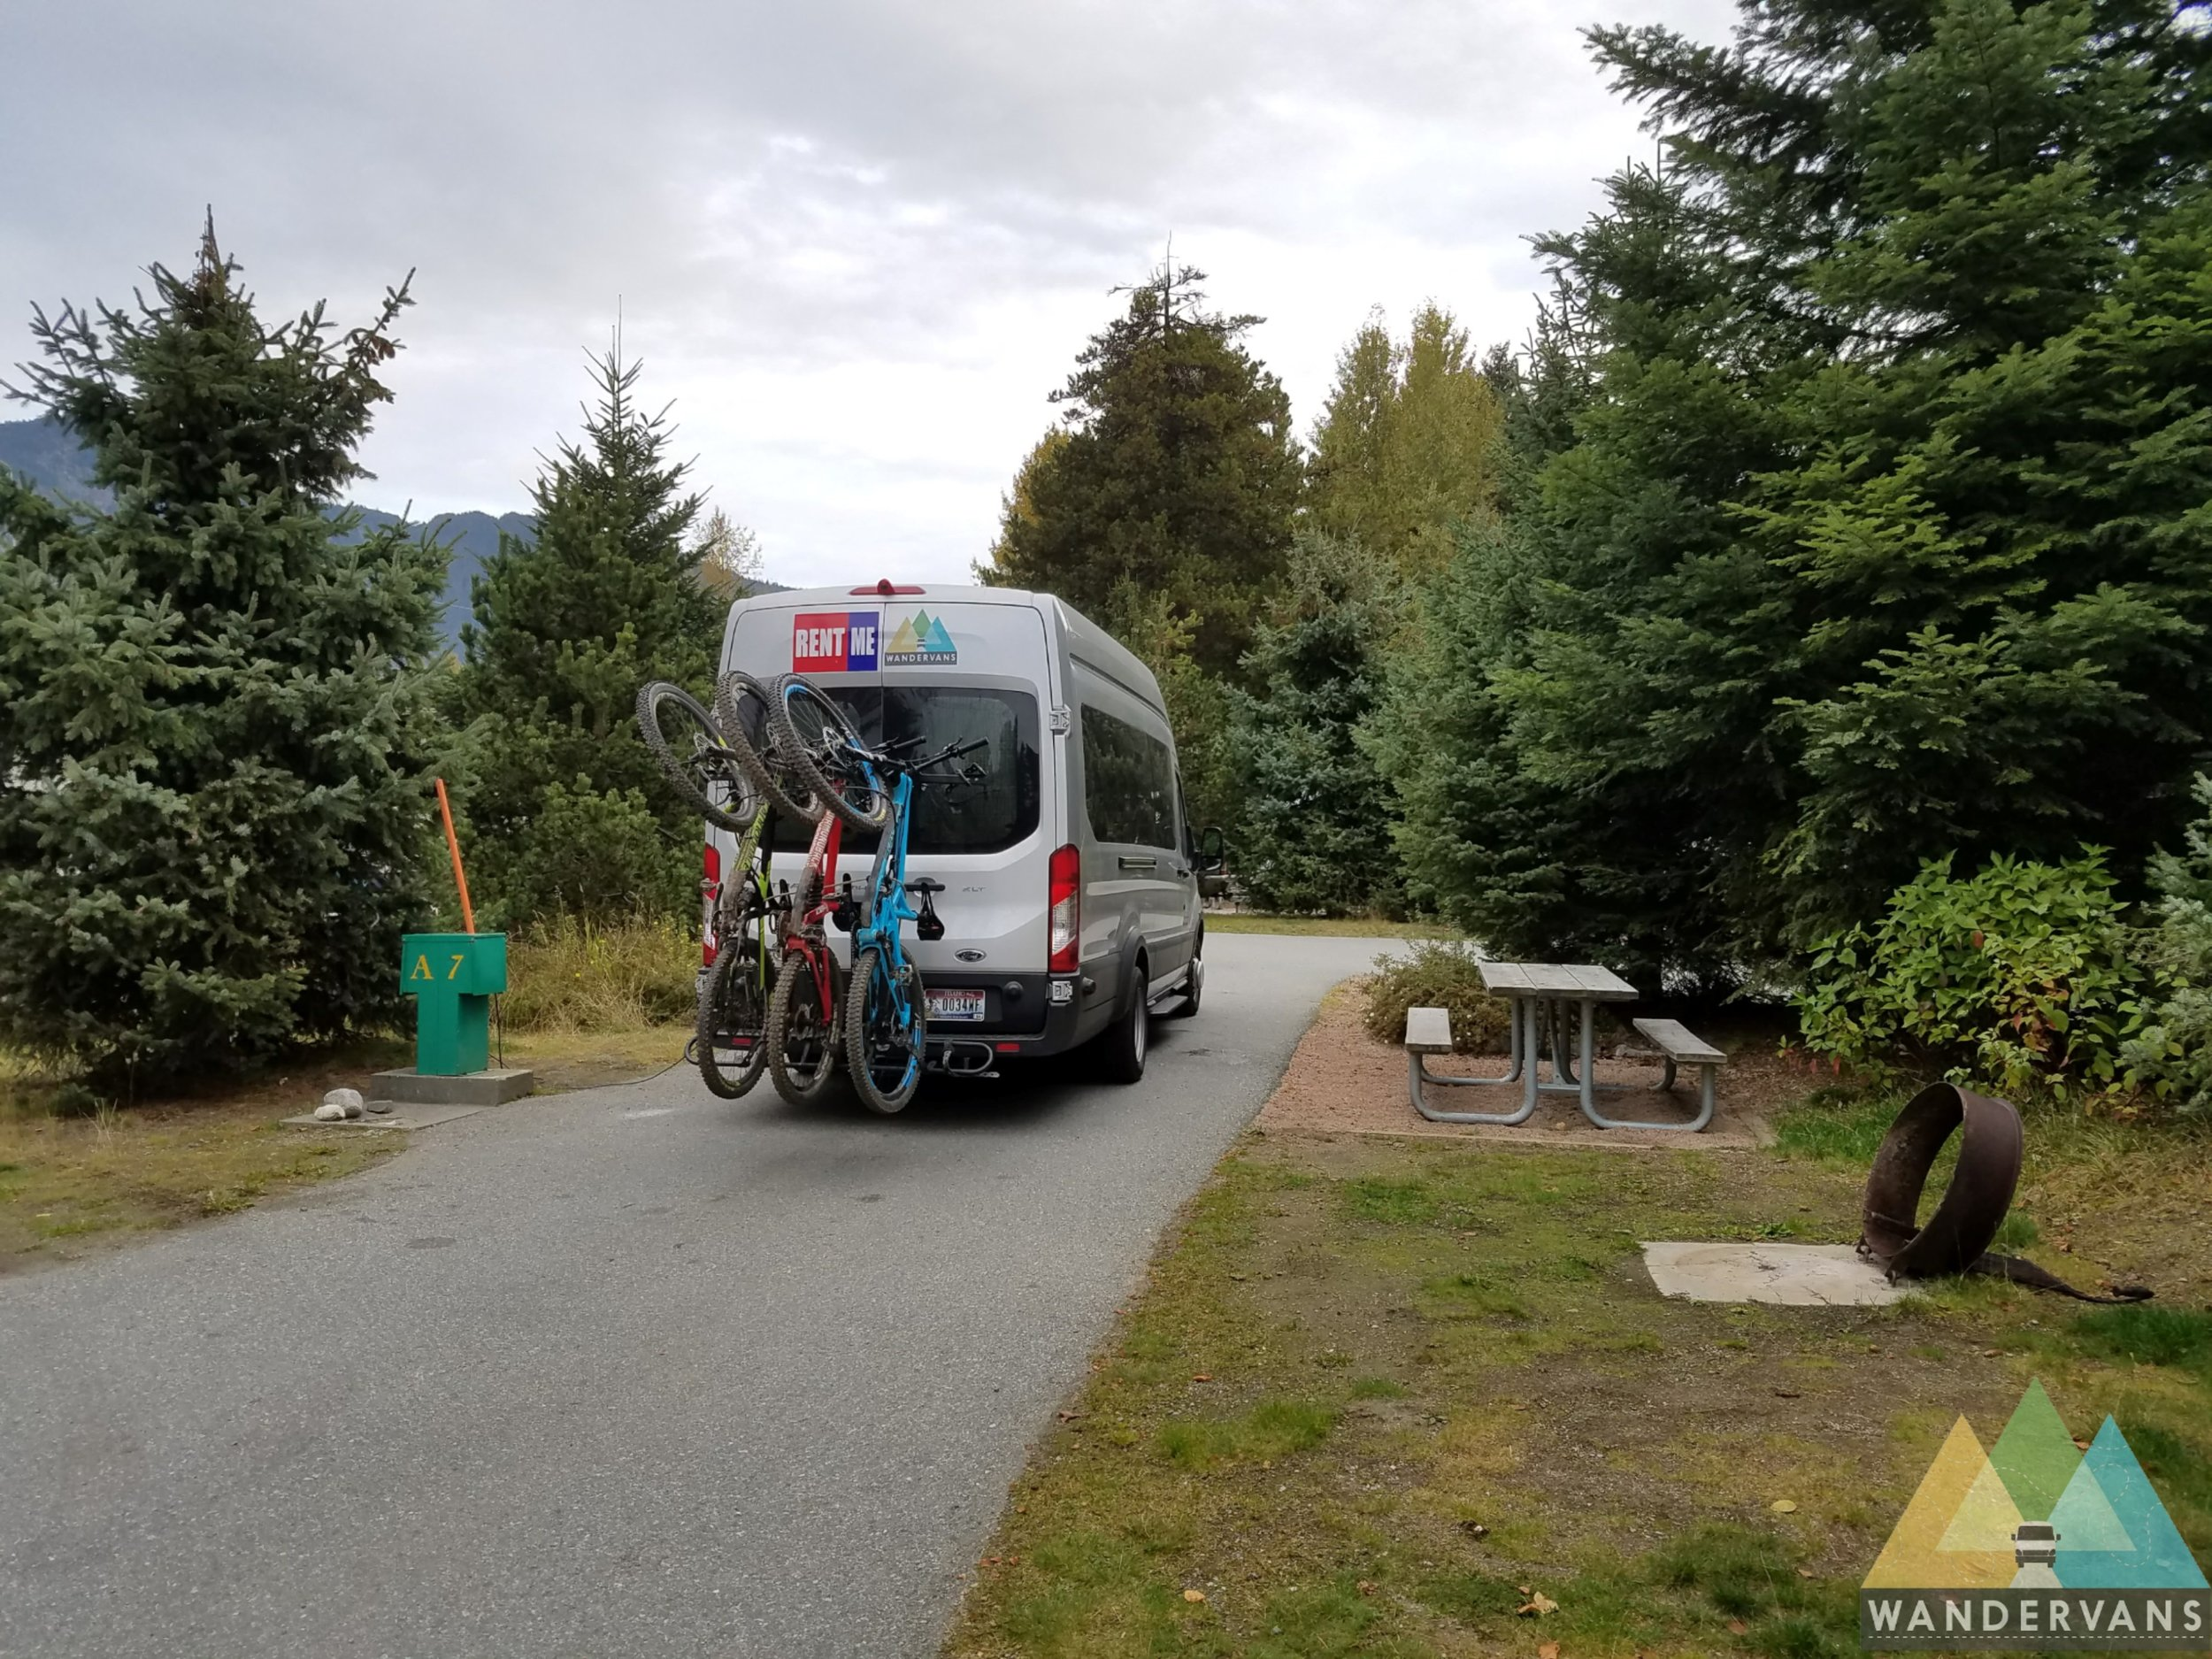 vanlife-rv-campervan-rent-idaho-sun-valley-boise-wandervans-wanderlust-skiing-backcountry-snowboard-sawtooth-backcountry-whistler-mountain-biking